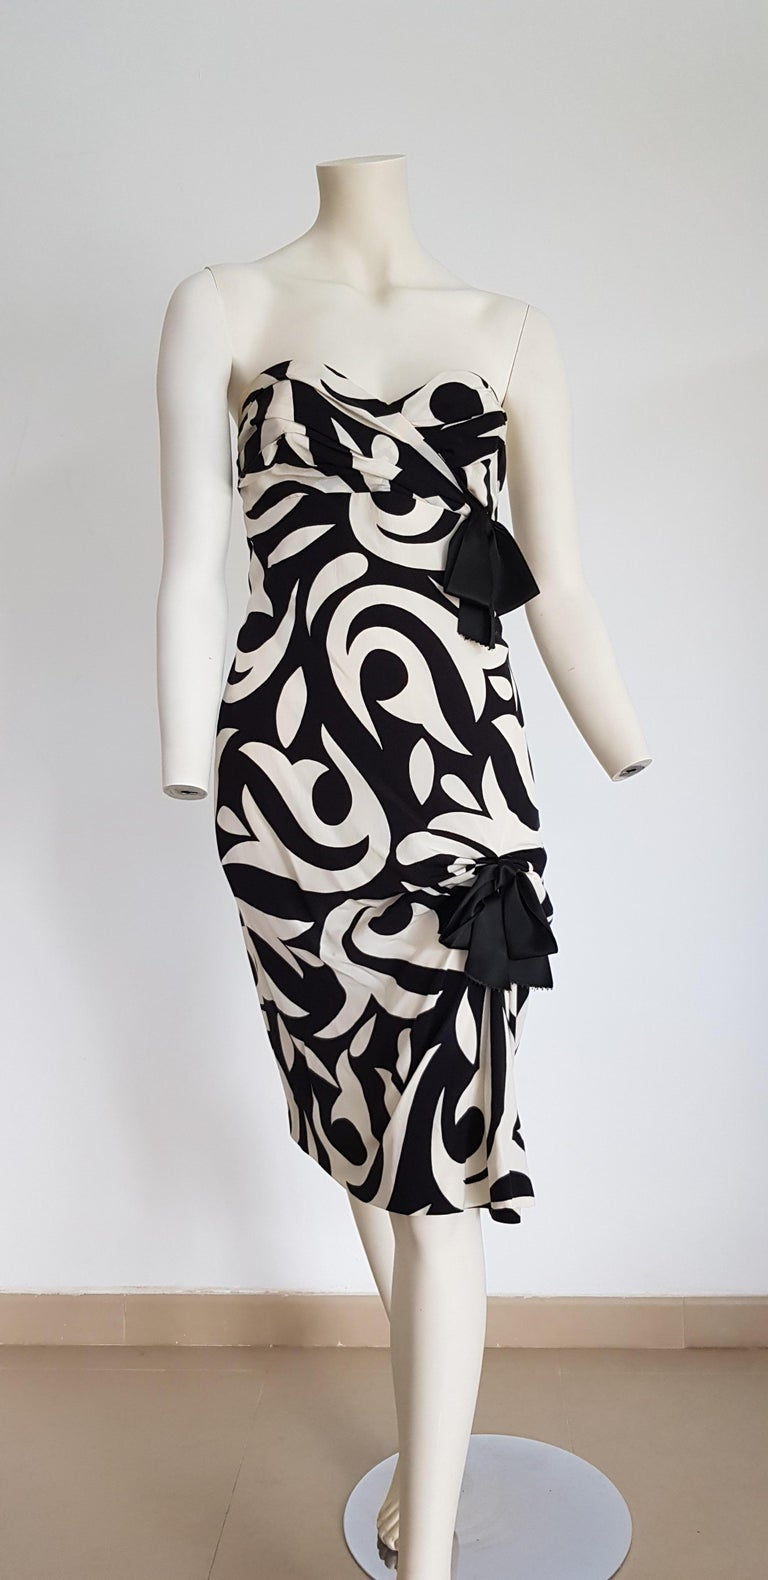 CHANEL Haute Couture, strapless, black with white lilies flowers design, two black bows on the front, silk, evening dress day dress - Unworn, New.  SIZE: equivalent to about Small / Medium, please review approx measurements as follows in cm: lenght